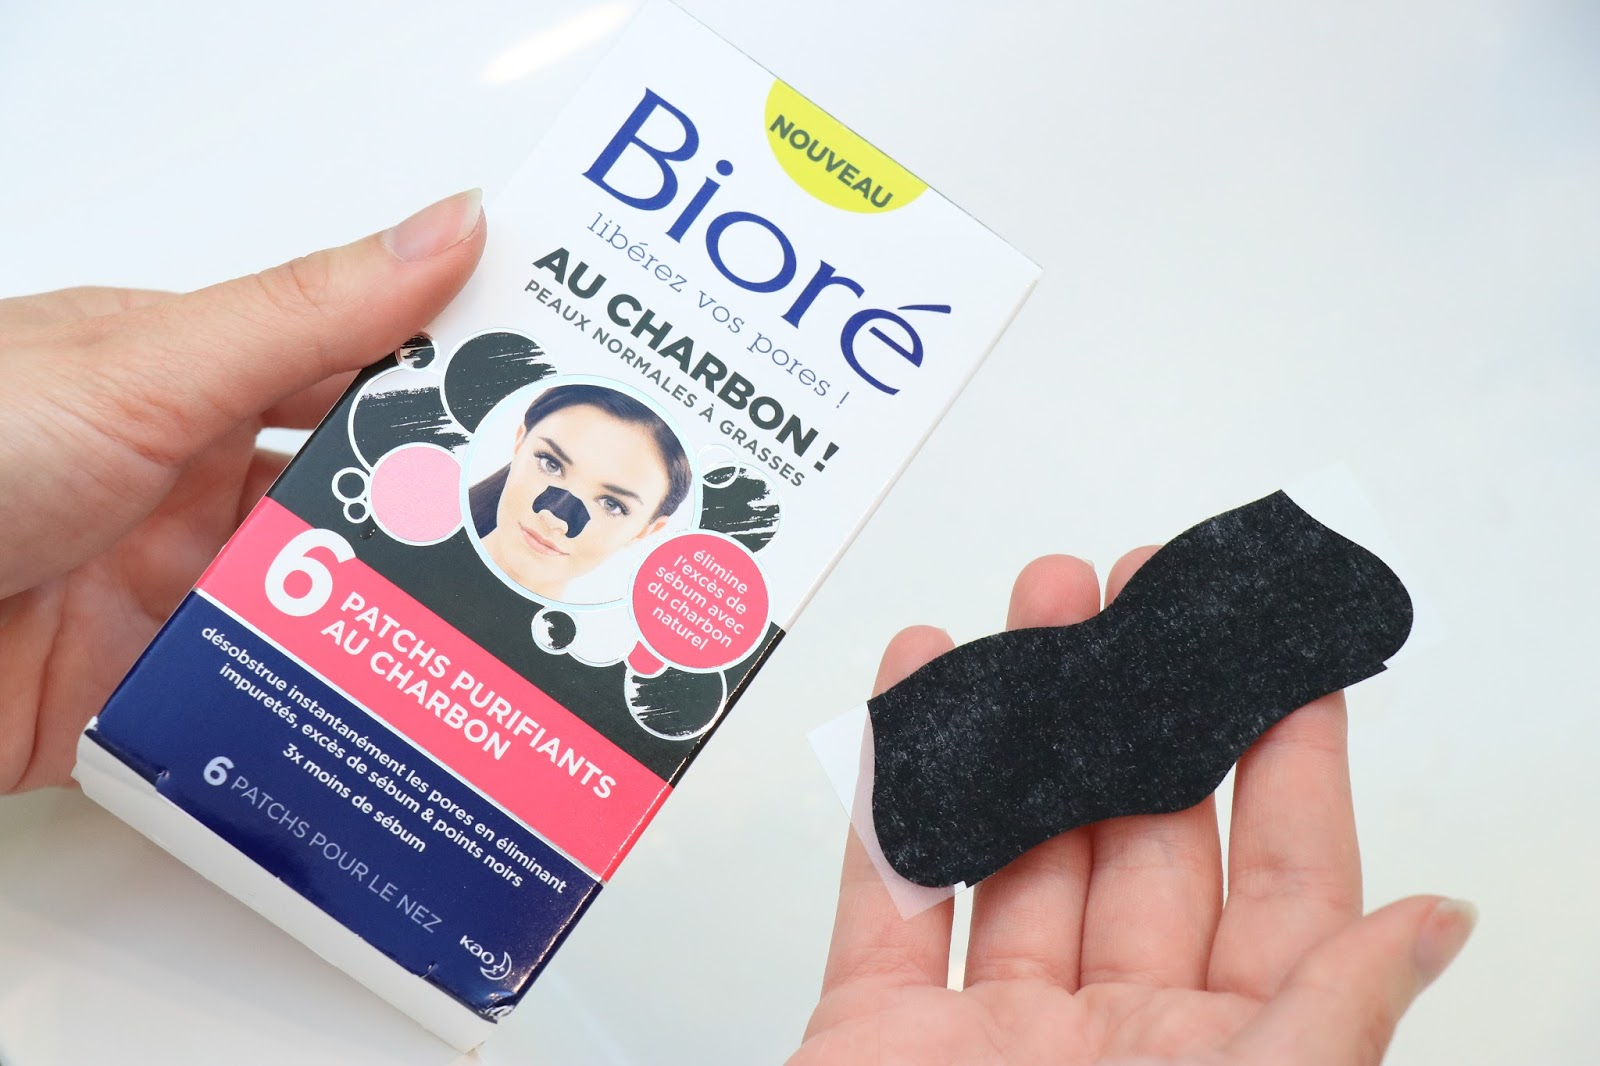 ma routine bior au charbon contre les points noirs les gommettes de melo. Black Bedroom Furniture Sets. Home Design Ideas